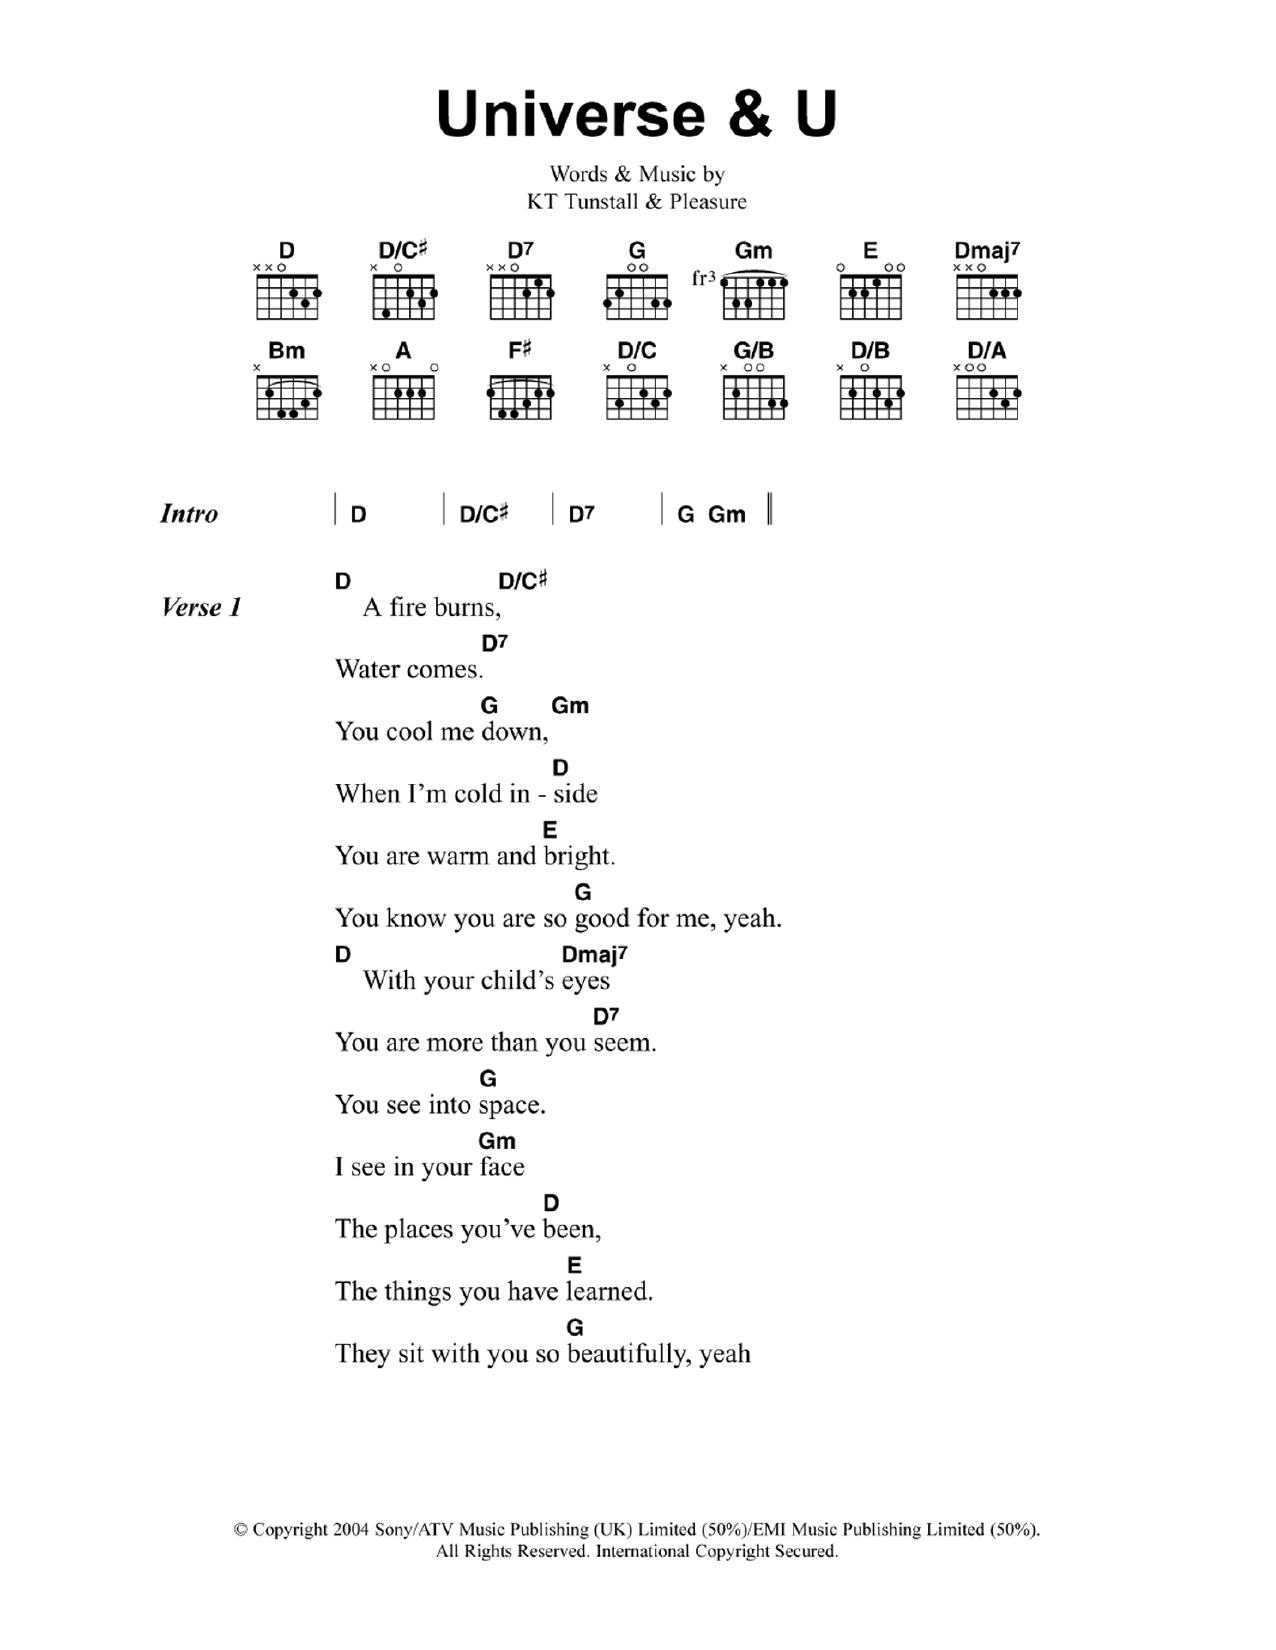 Universe and U by KT Tunstall - Guitar Chords/Lyrics - Guitar Instructor